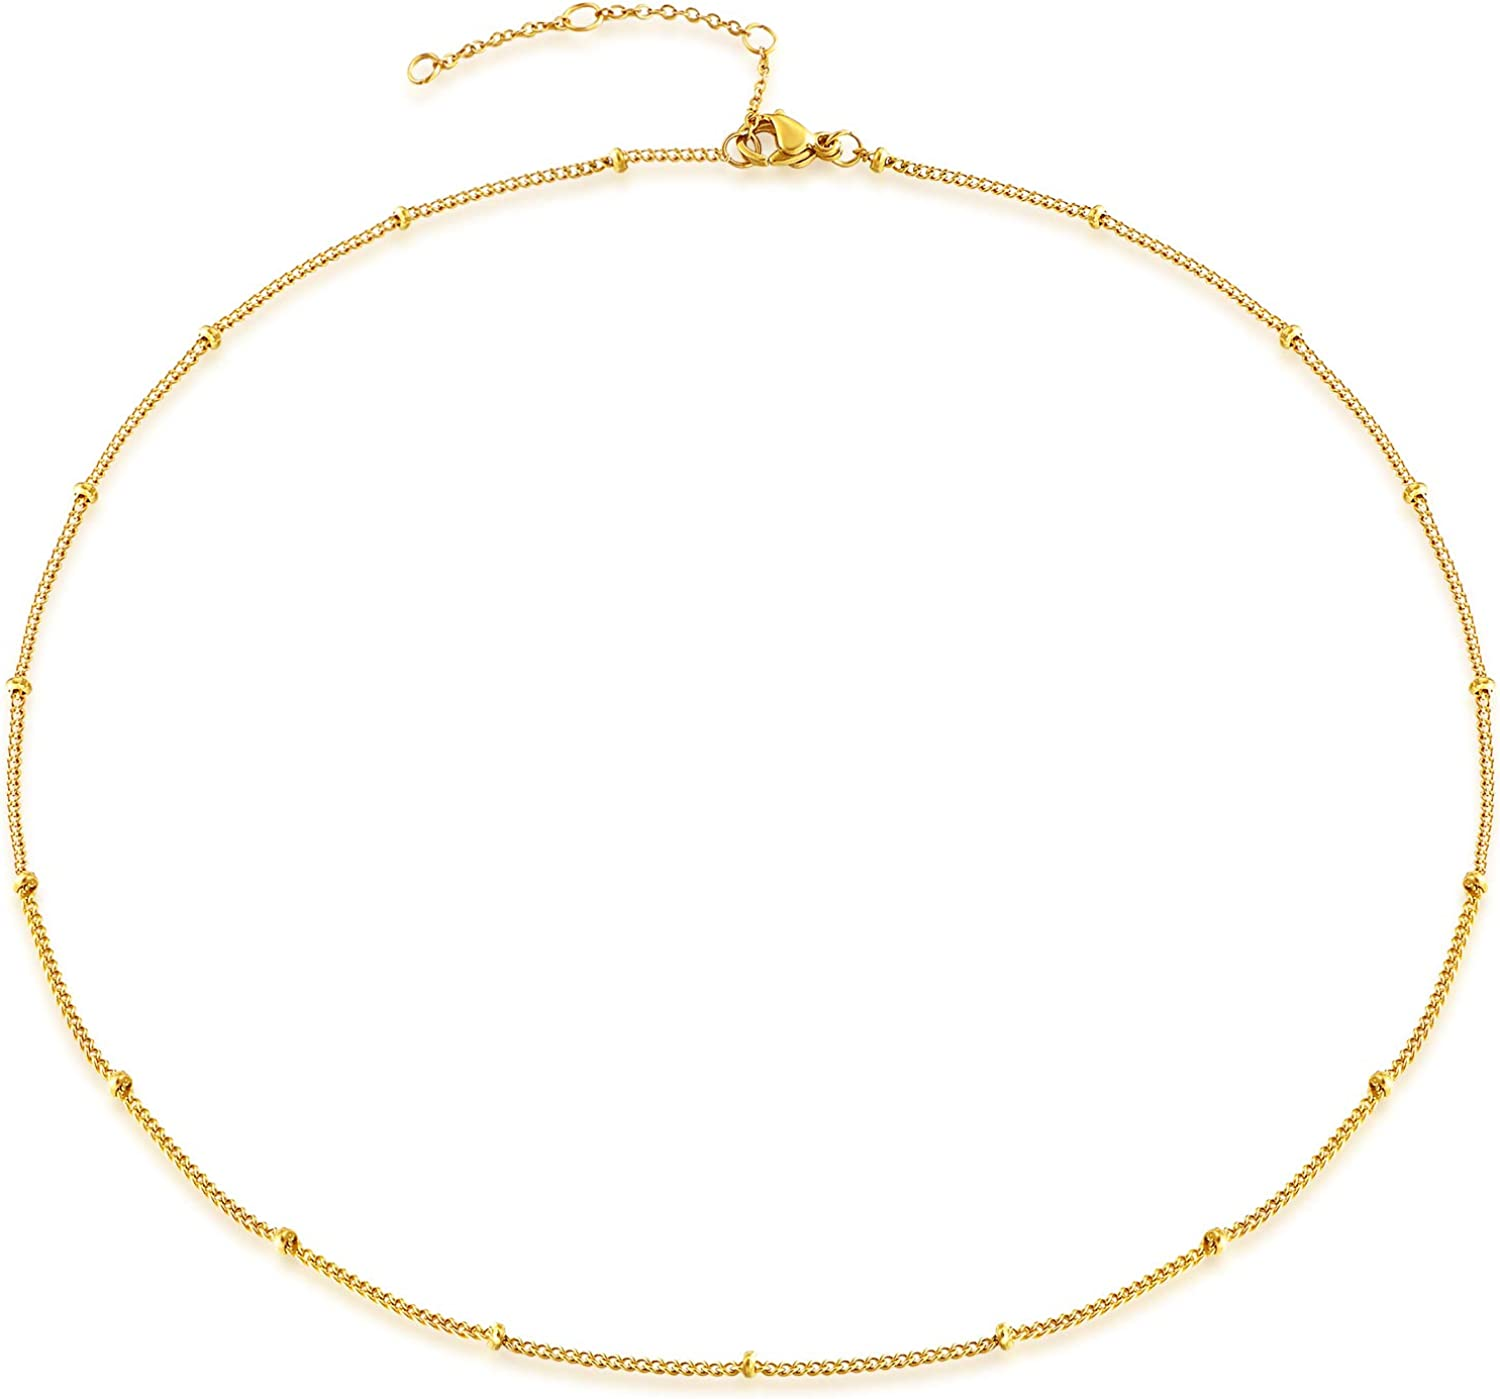 Estendly Dainty Gold Layered Bar Neckalce Moon Pendant Lariat Y Necklace 14K Gold Simple Necklace for Women